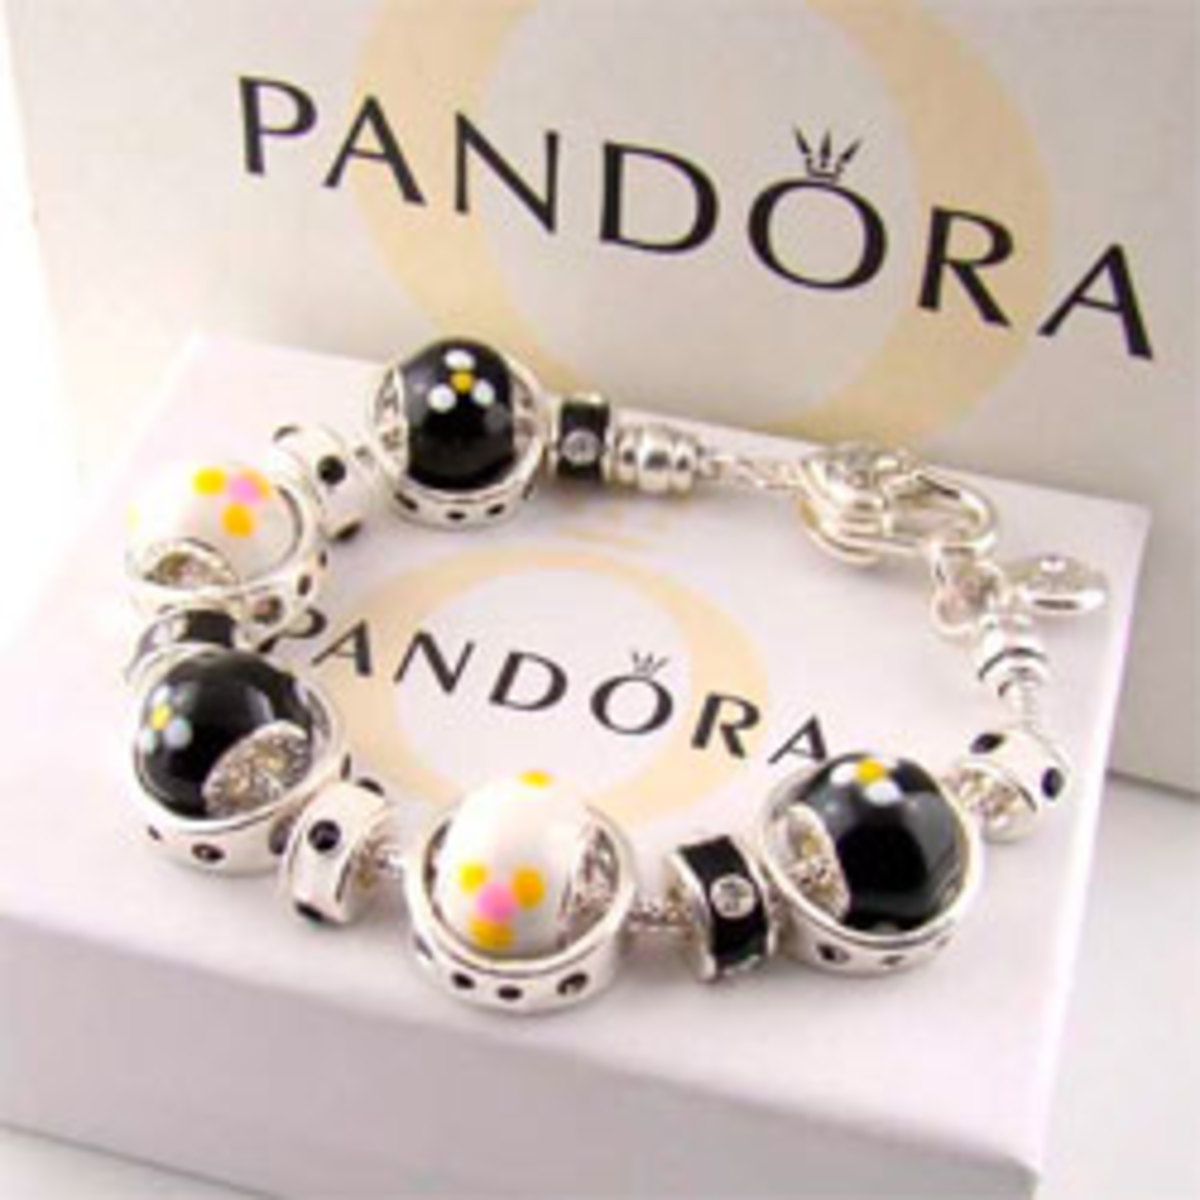 A beautiful, pre-adorned Pandora bracelet for sale.